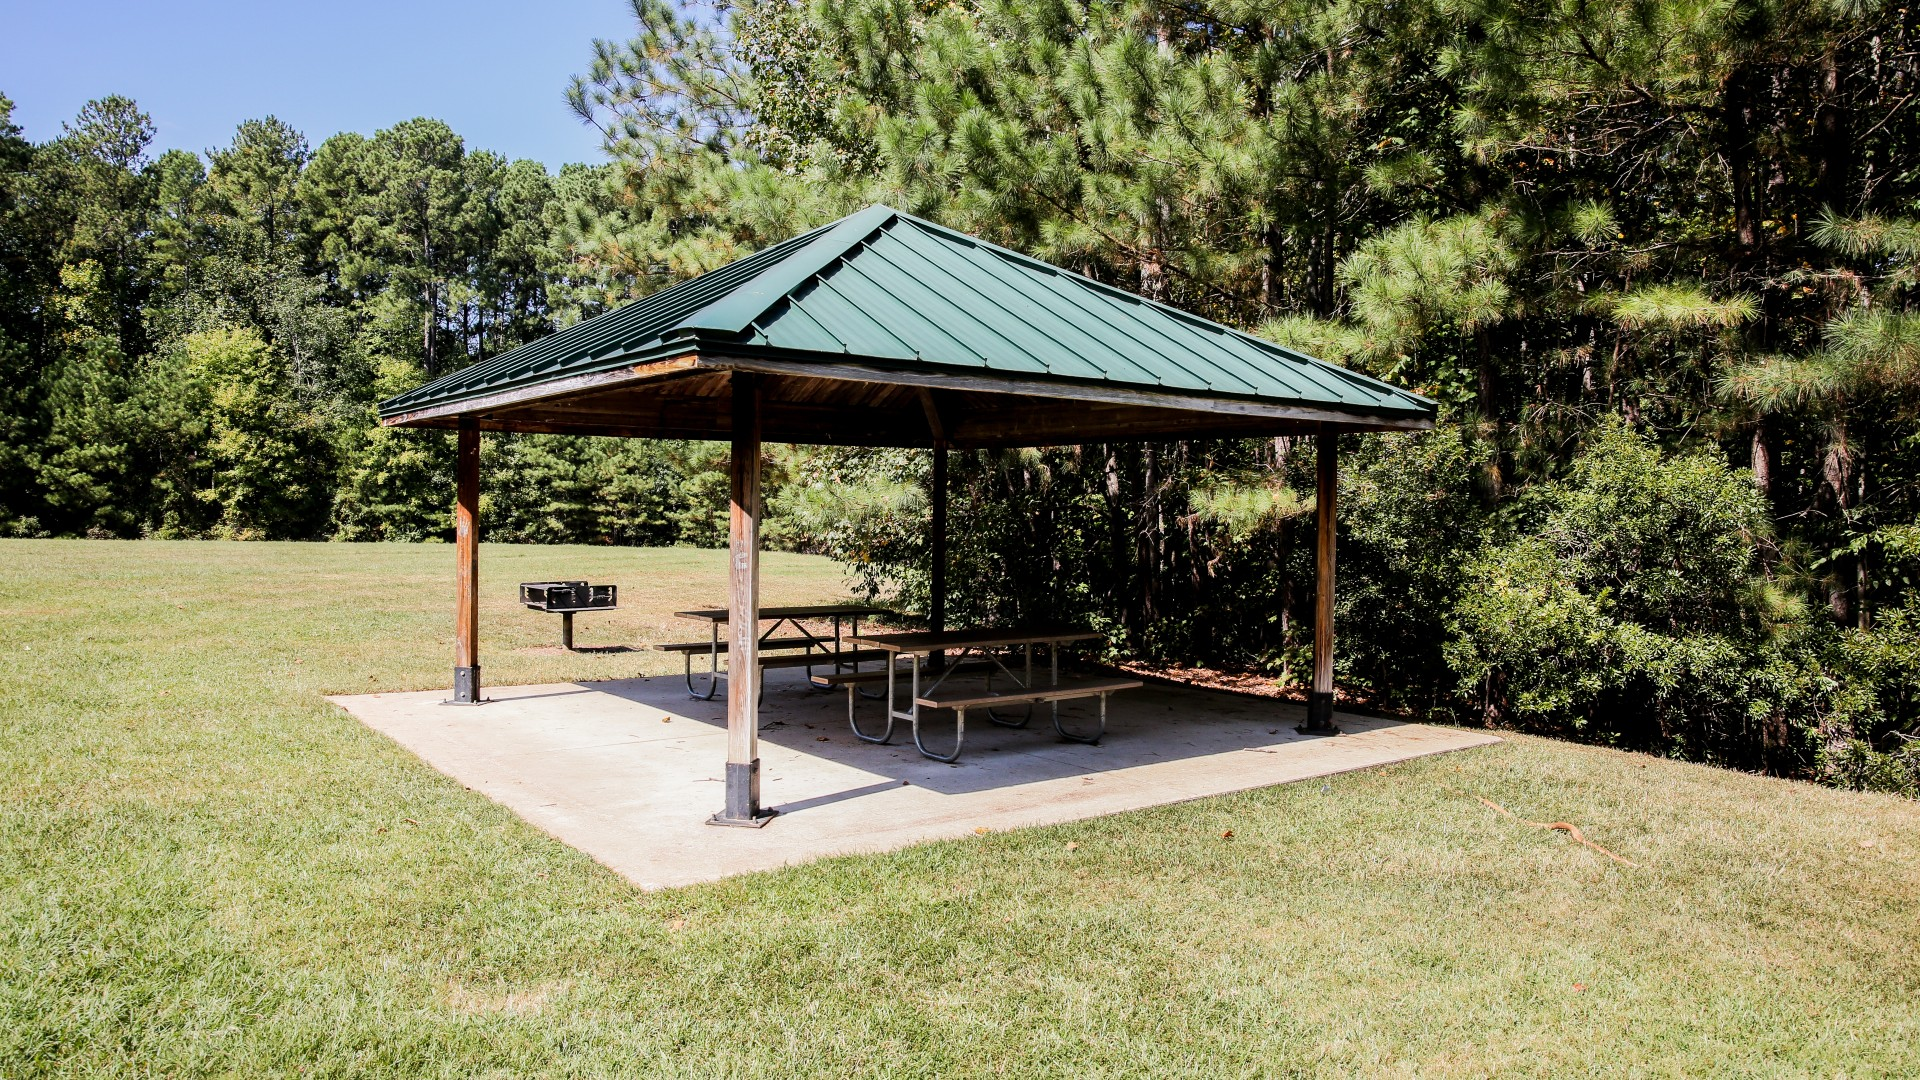 A second smaller outdoor picnic shelter with two tables at Baileywick Park